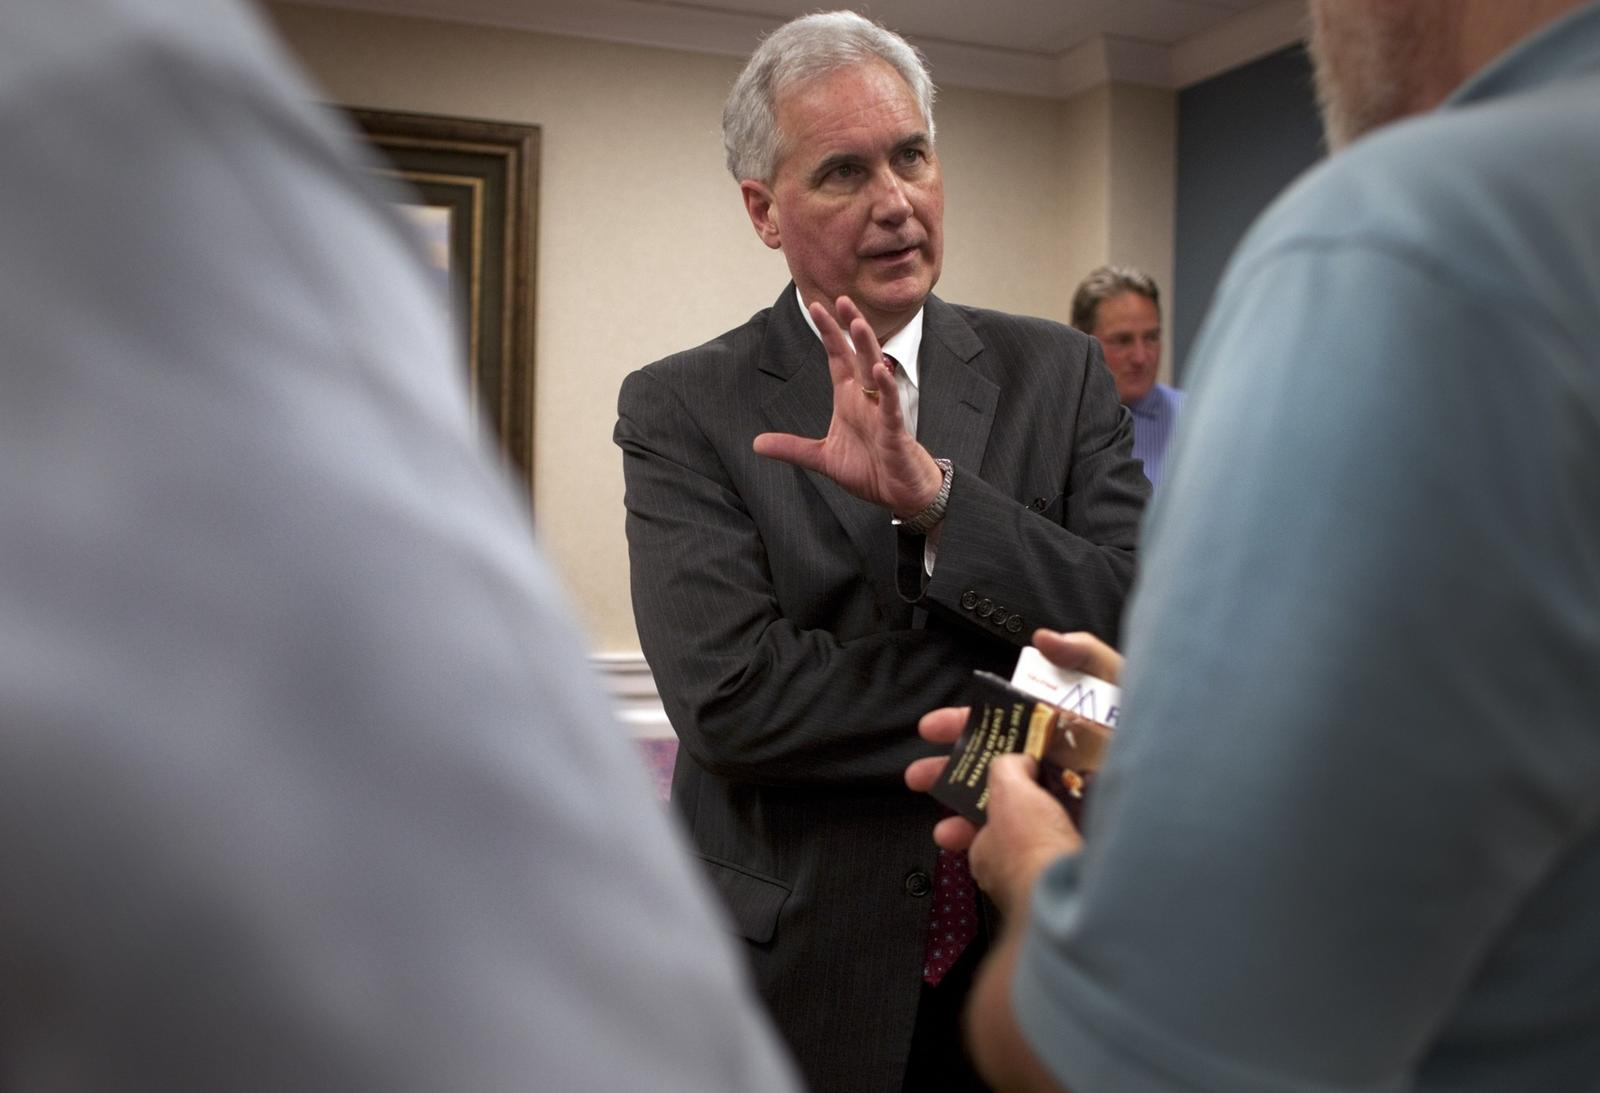 Rep. Tom McClintock (R-Elk Grove) talks with voters after speaking to a tea party group. (Gina Ferazzi / Los Angeles Times)